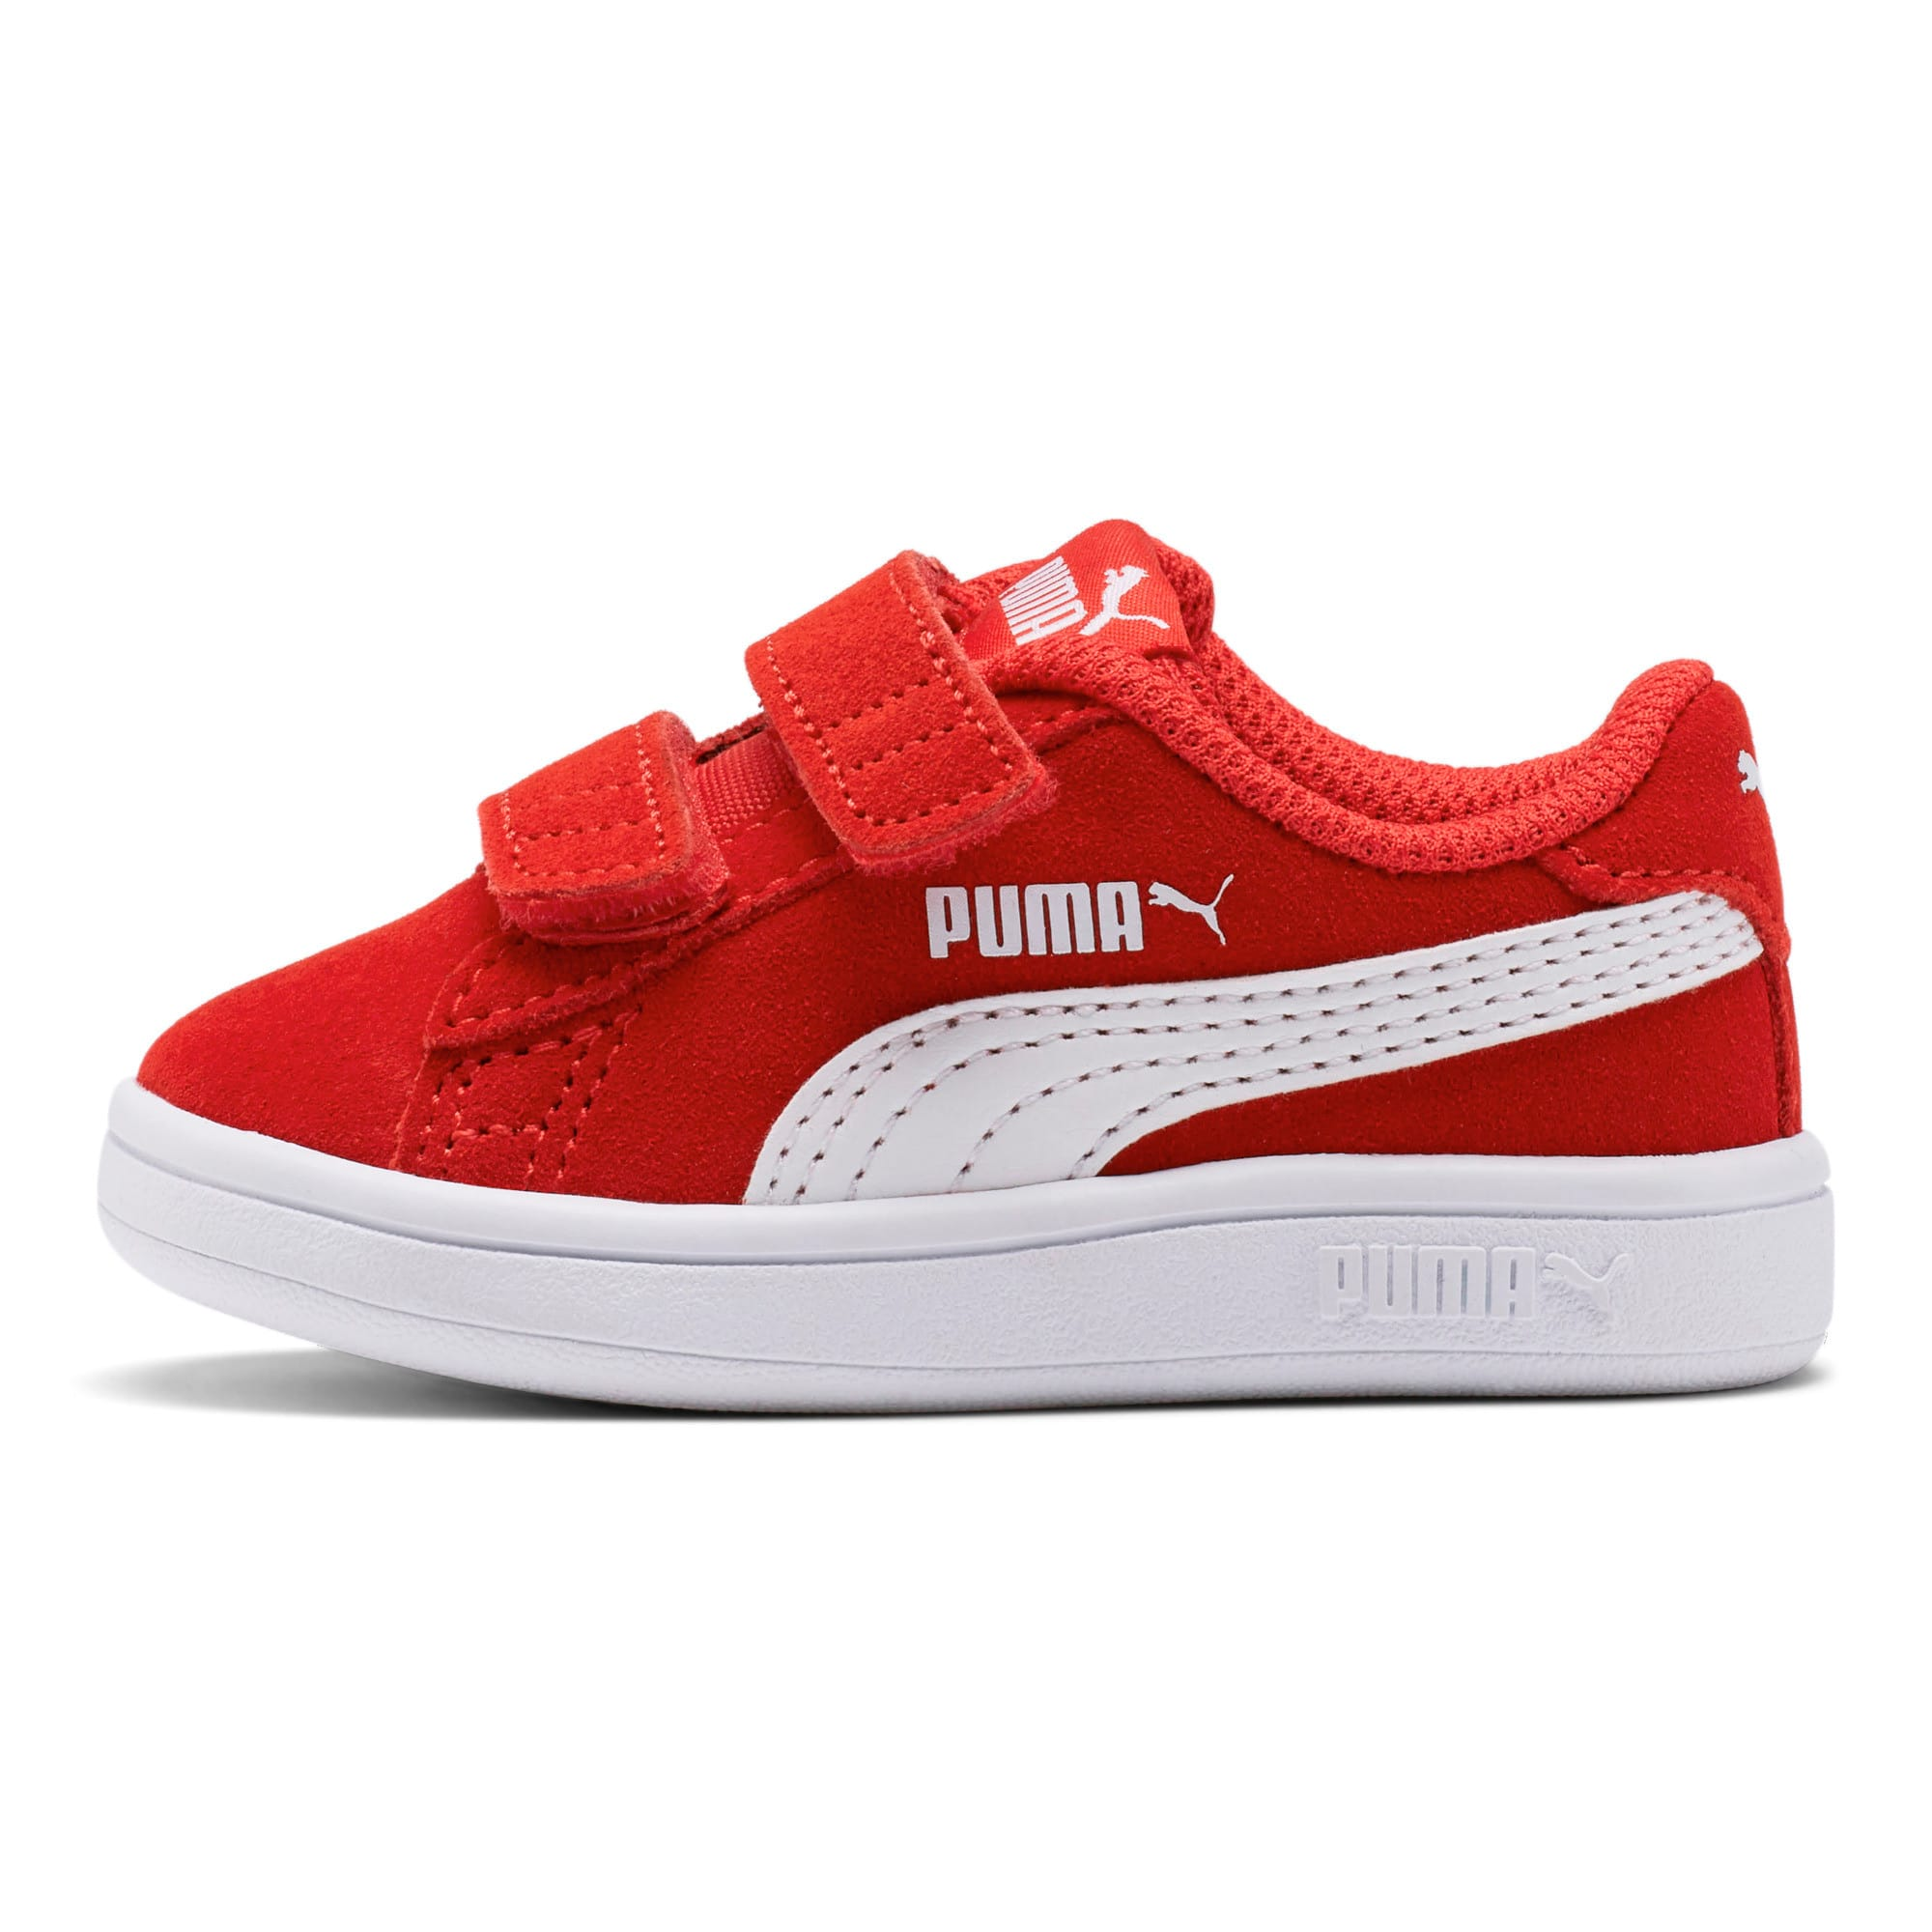 PUMA Smash v2 Suede Toddler Shoes